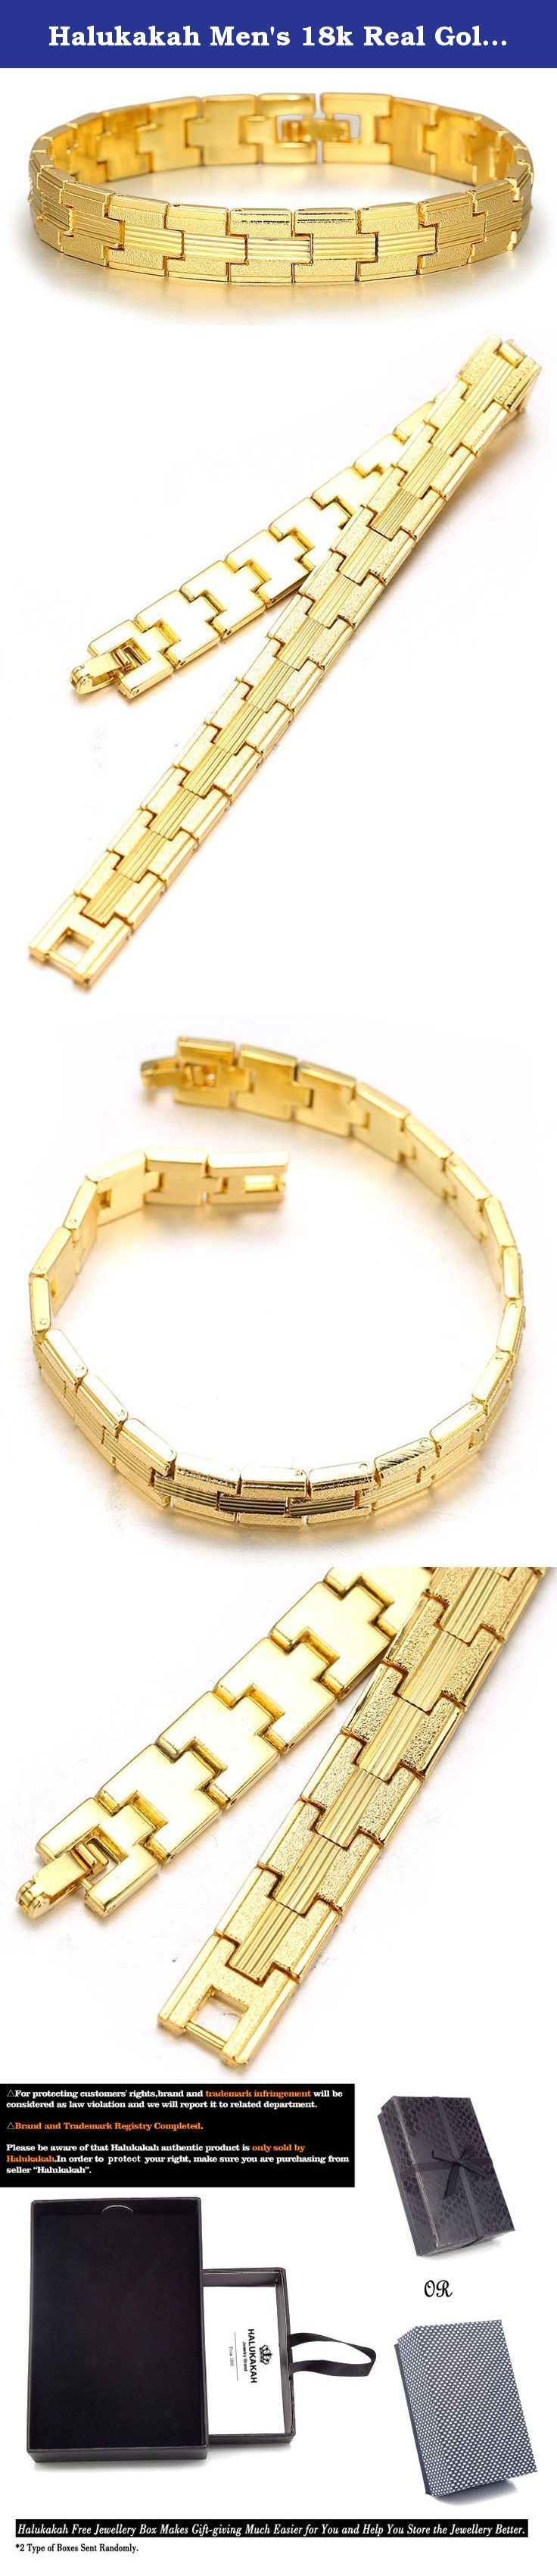 Halukakah Men's 18k Real Gold Plated Link Bracelet Carving Wristband with FREE Giftbox. About Halukakah Halukakah is a jewelry brand which started from 1990s,now Halukakah is an influential jewelry brand on the Web. We not only produce various jewelry products but also focus on novelty street style jewelry designs. Having our own factories based in East Asia,which makes it possible for everyone to enjoy our original design jewelries of high quality at a reasonable price. The Halukakah...